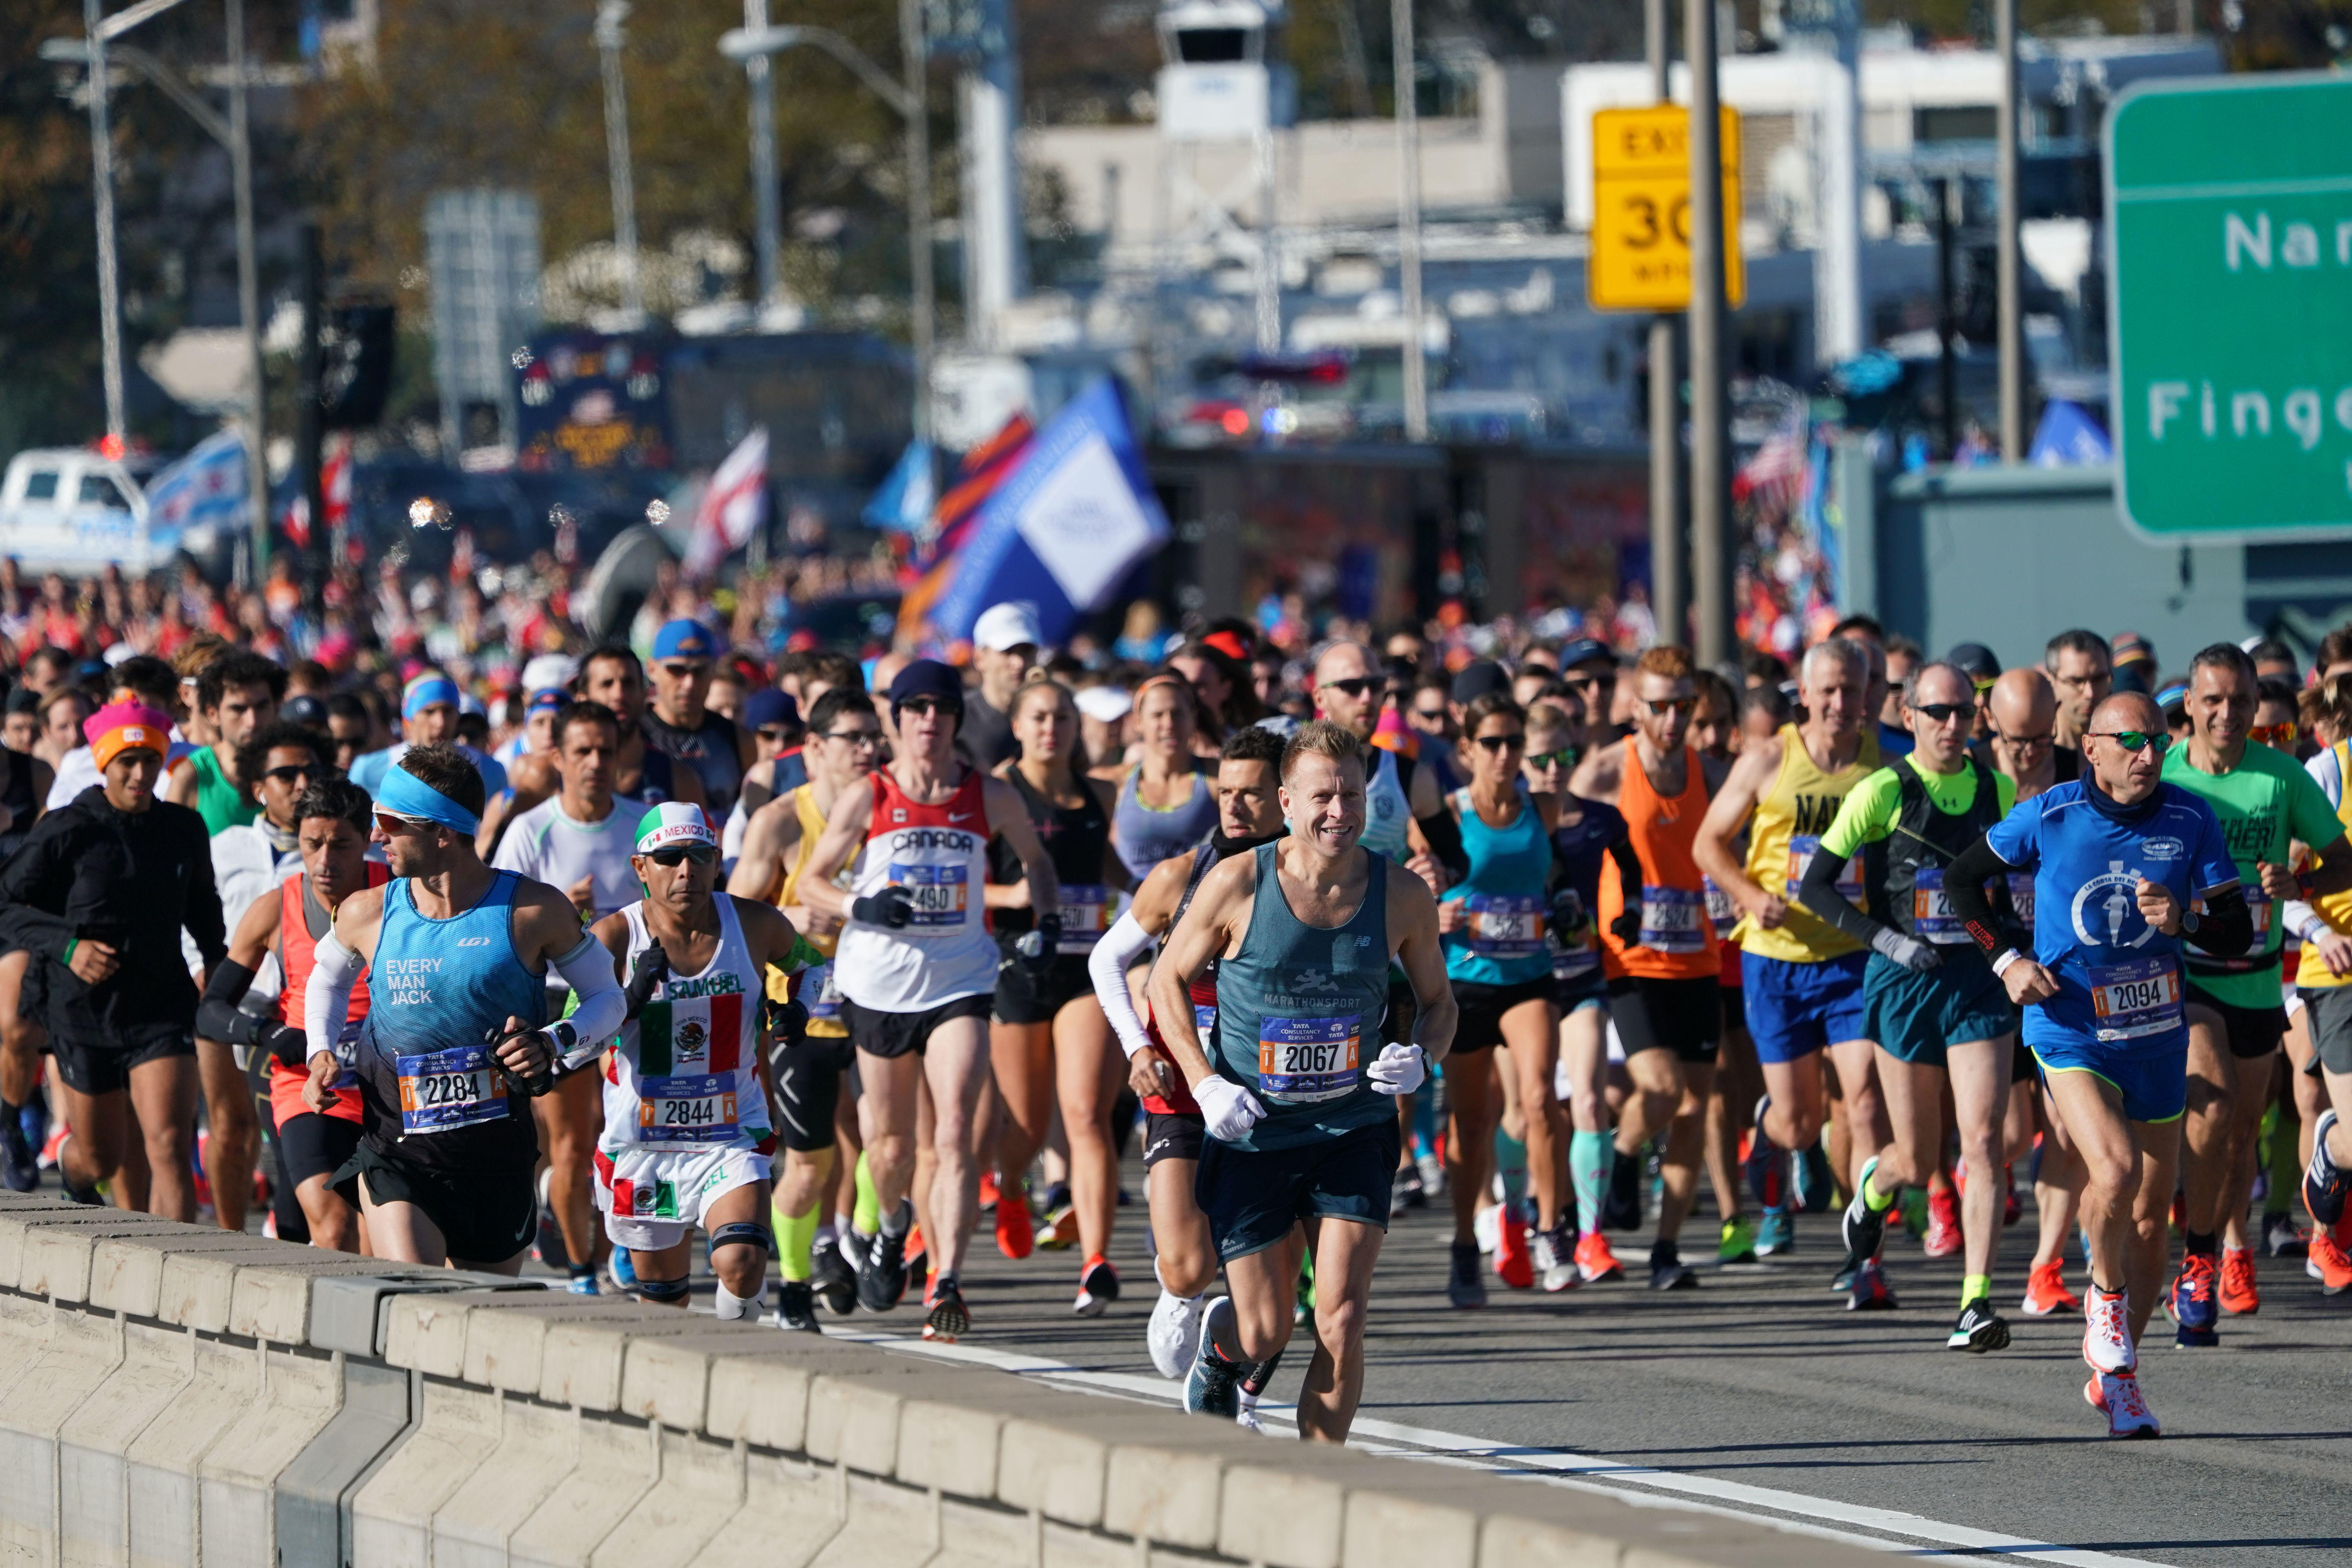 Runners take part in the New York City Marathon.